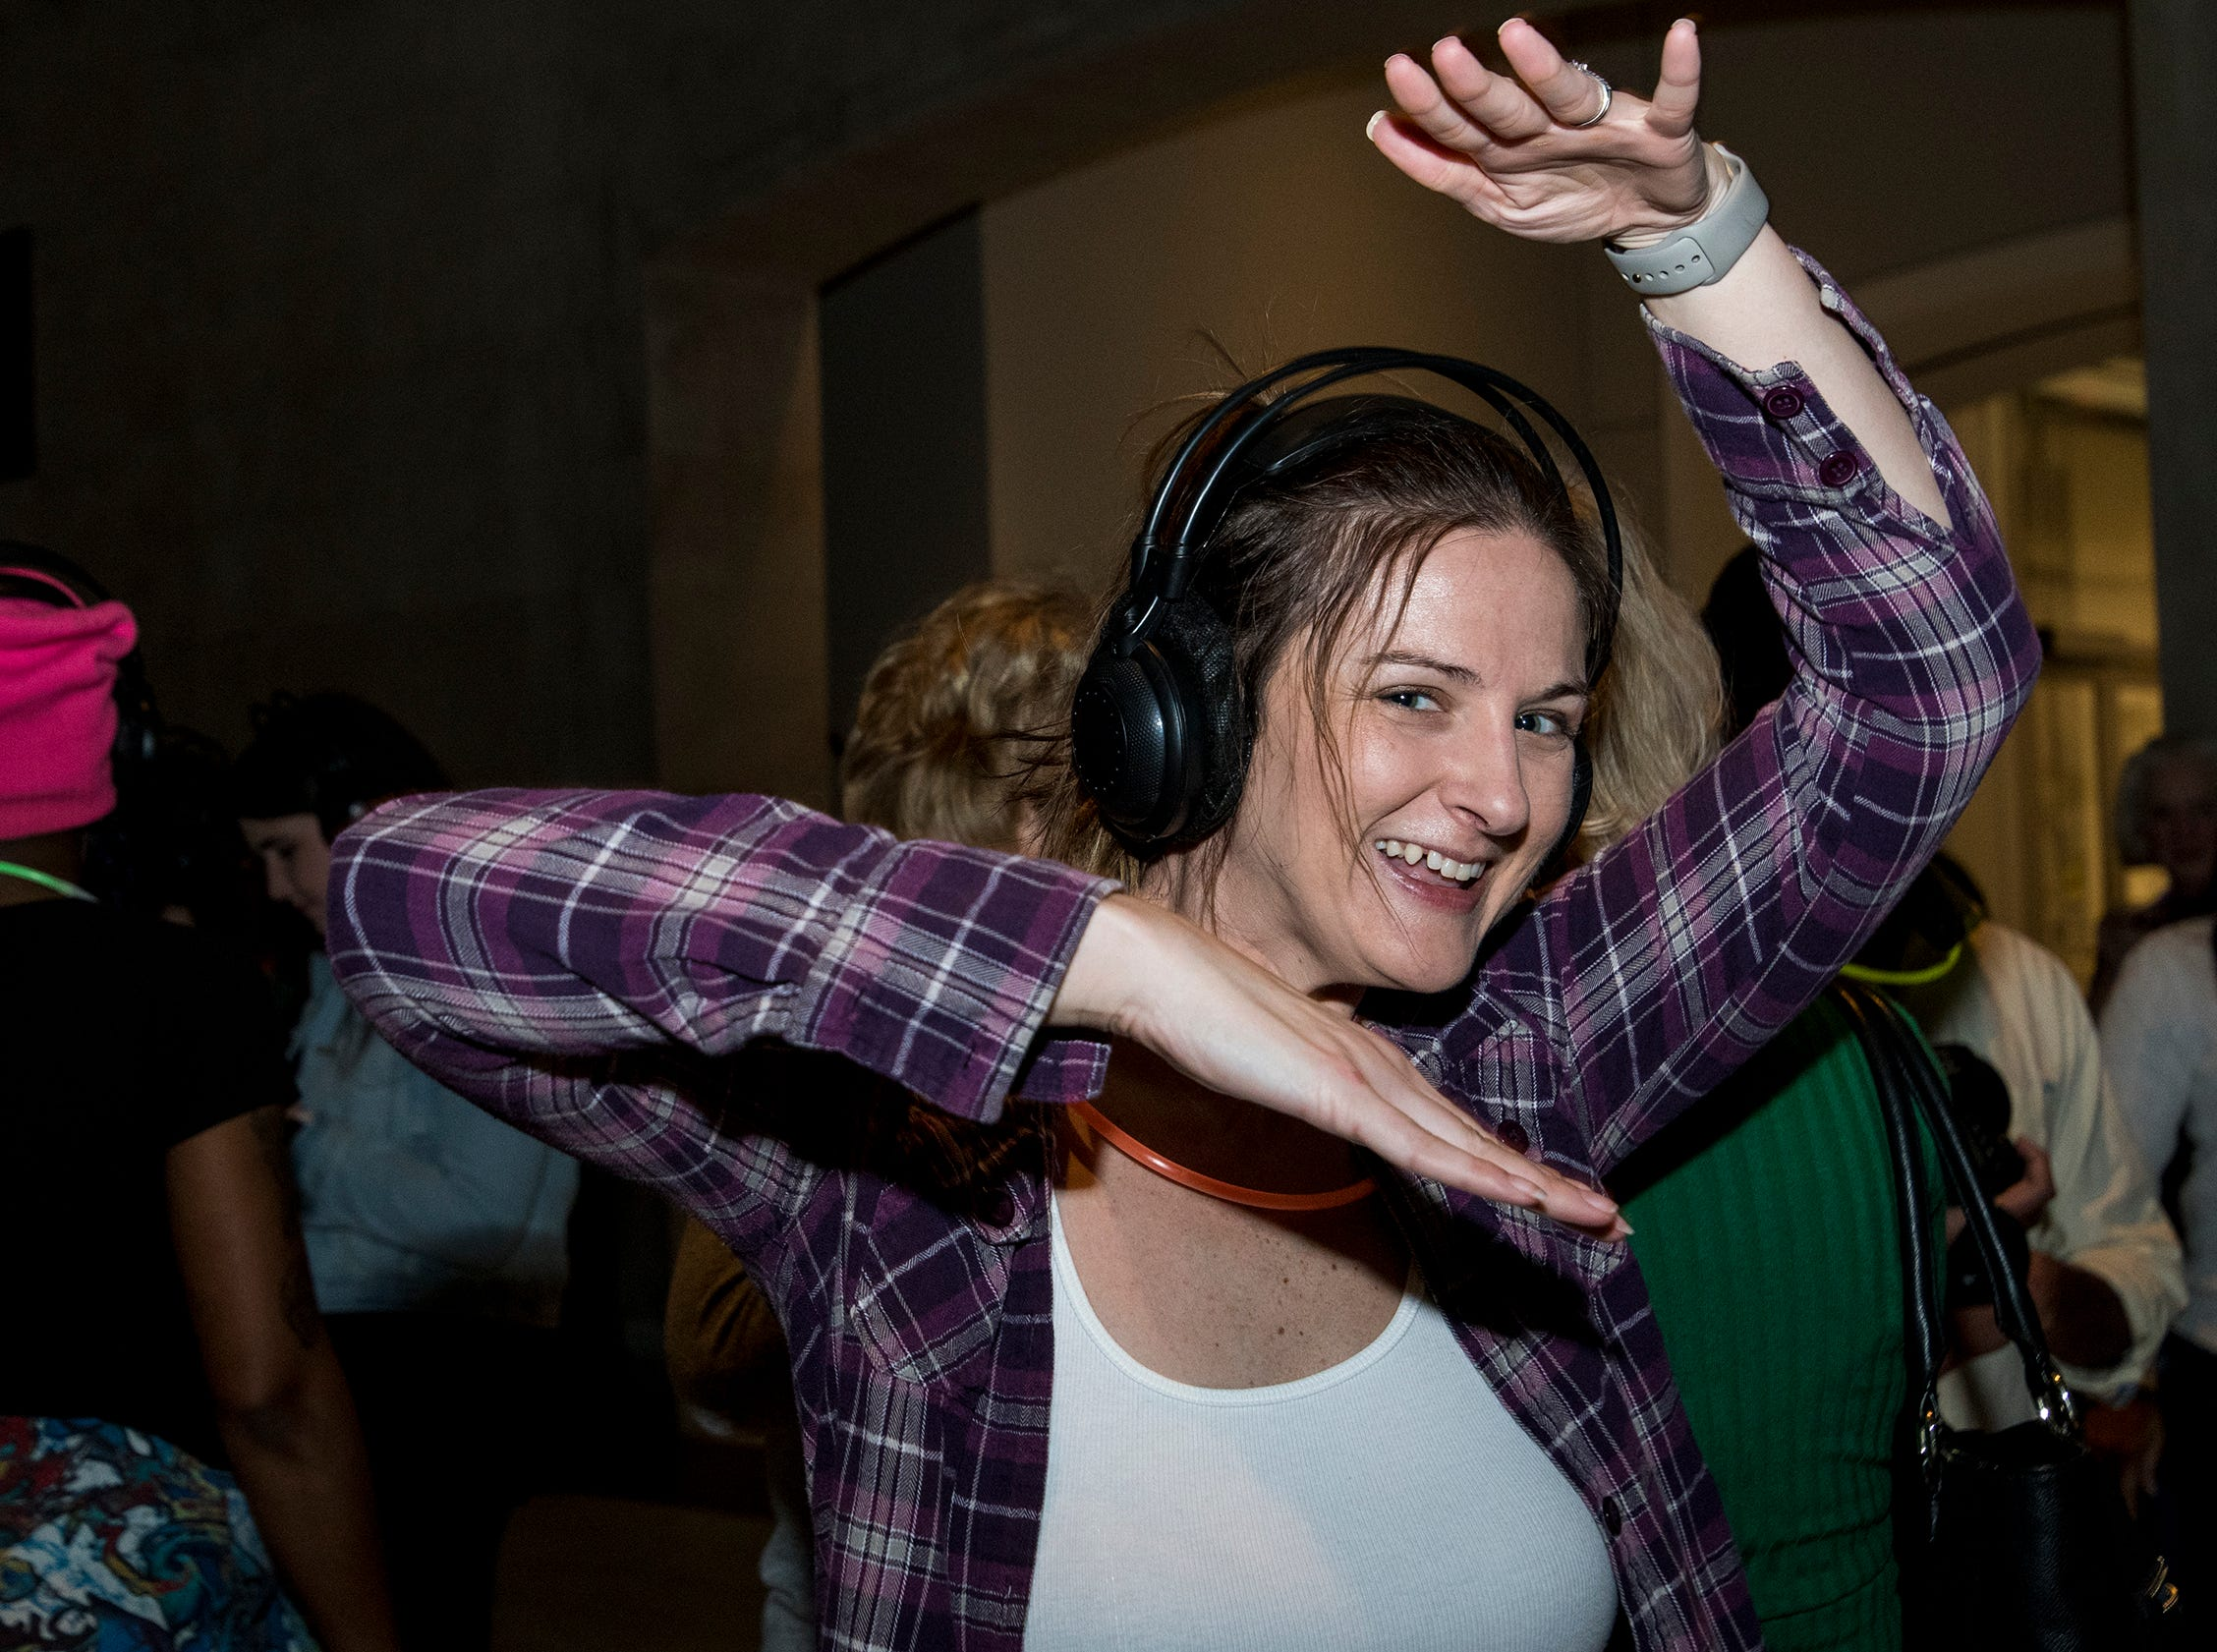 Kirsty Beagle of Madisonville Vogues during the 90s-themed silent disco at Art After Dark at the Cincinnati Art Museum Friday, January 25, 2019 in Cincinnati, Ohio.